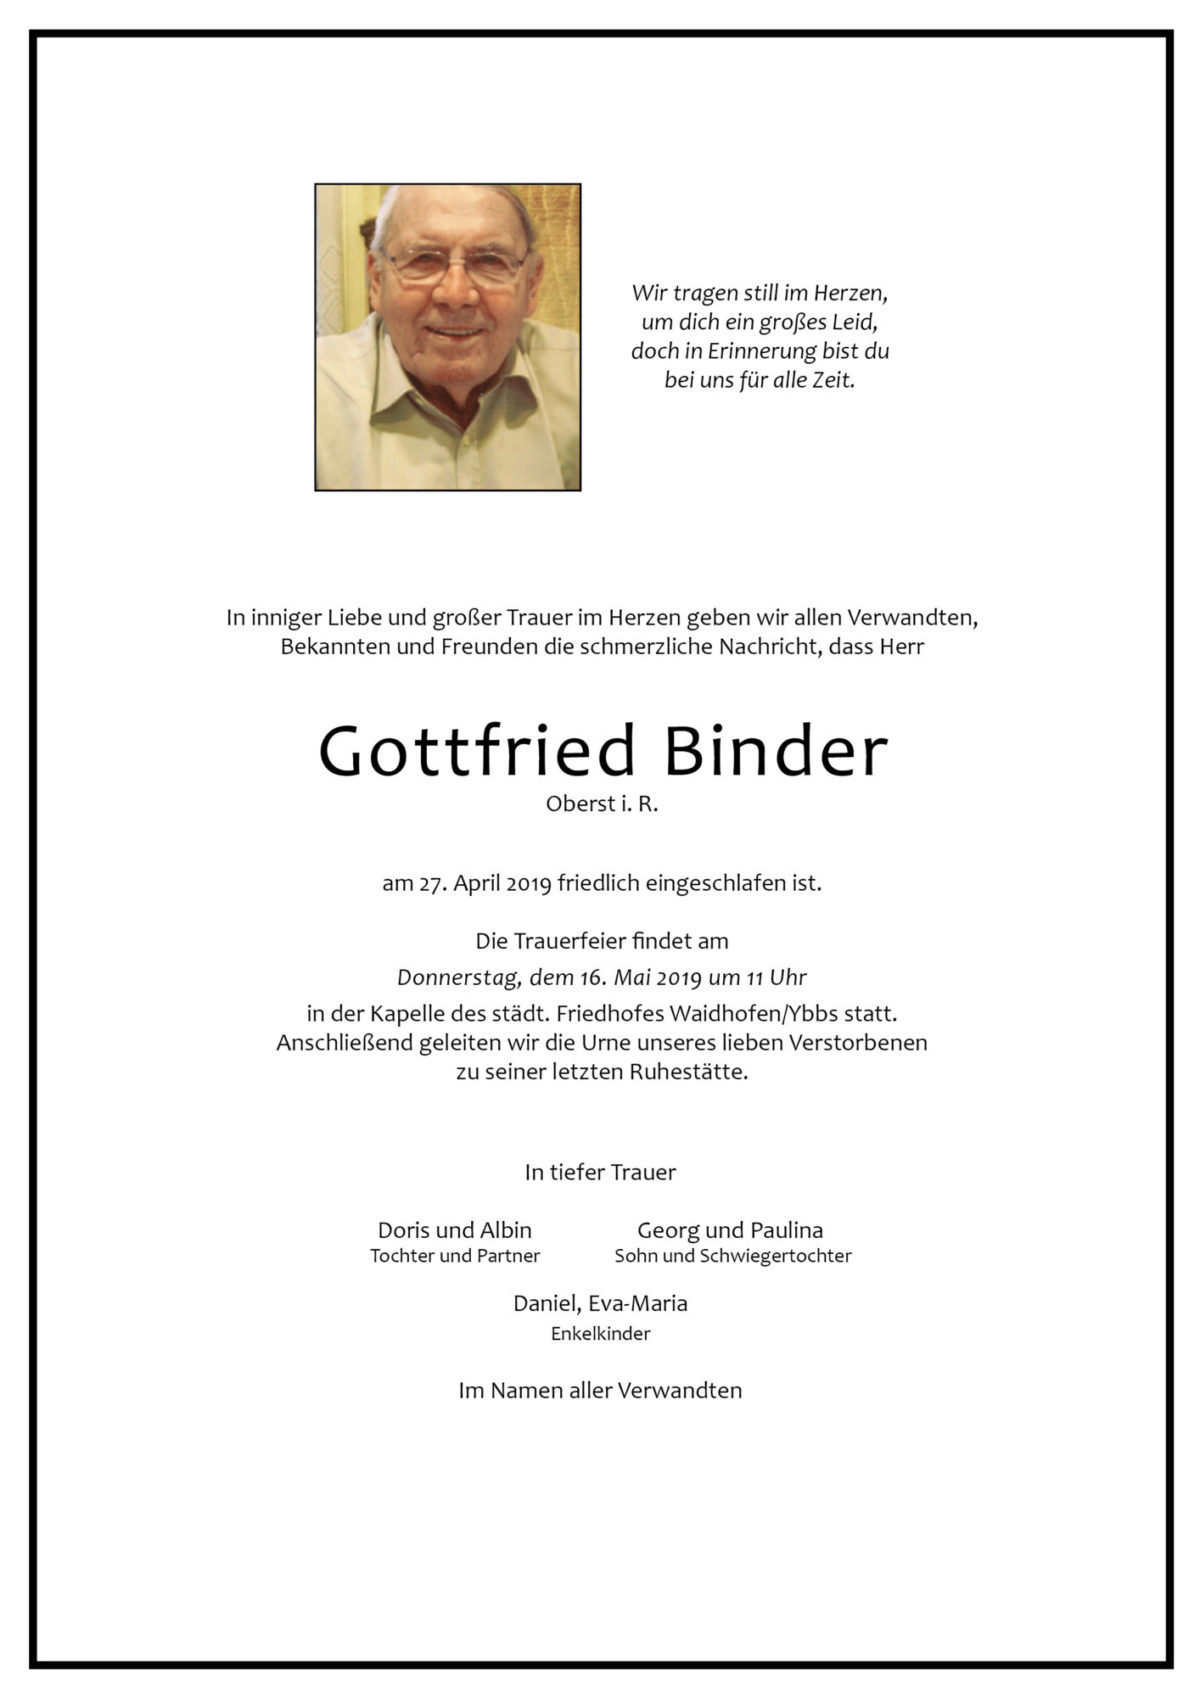 Gottfried Binder, Oberst i. R.